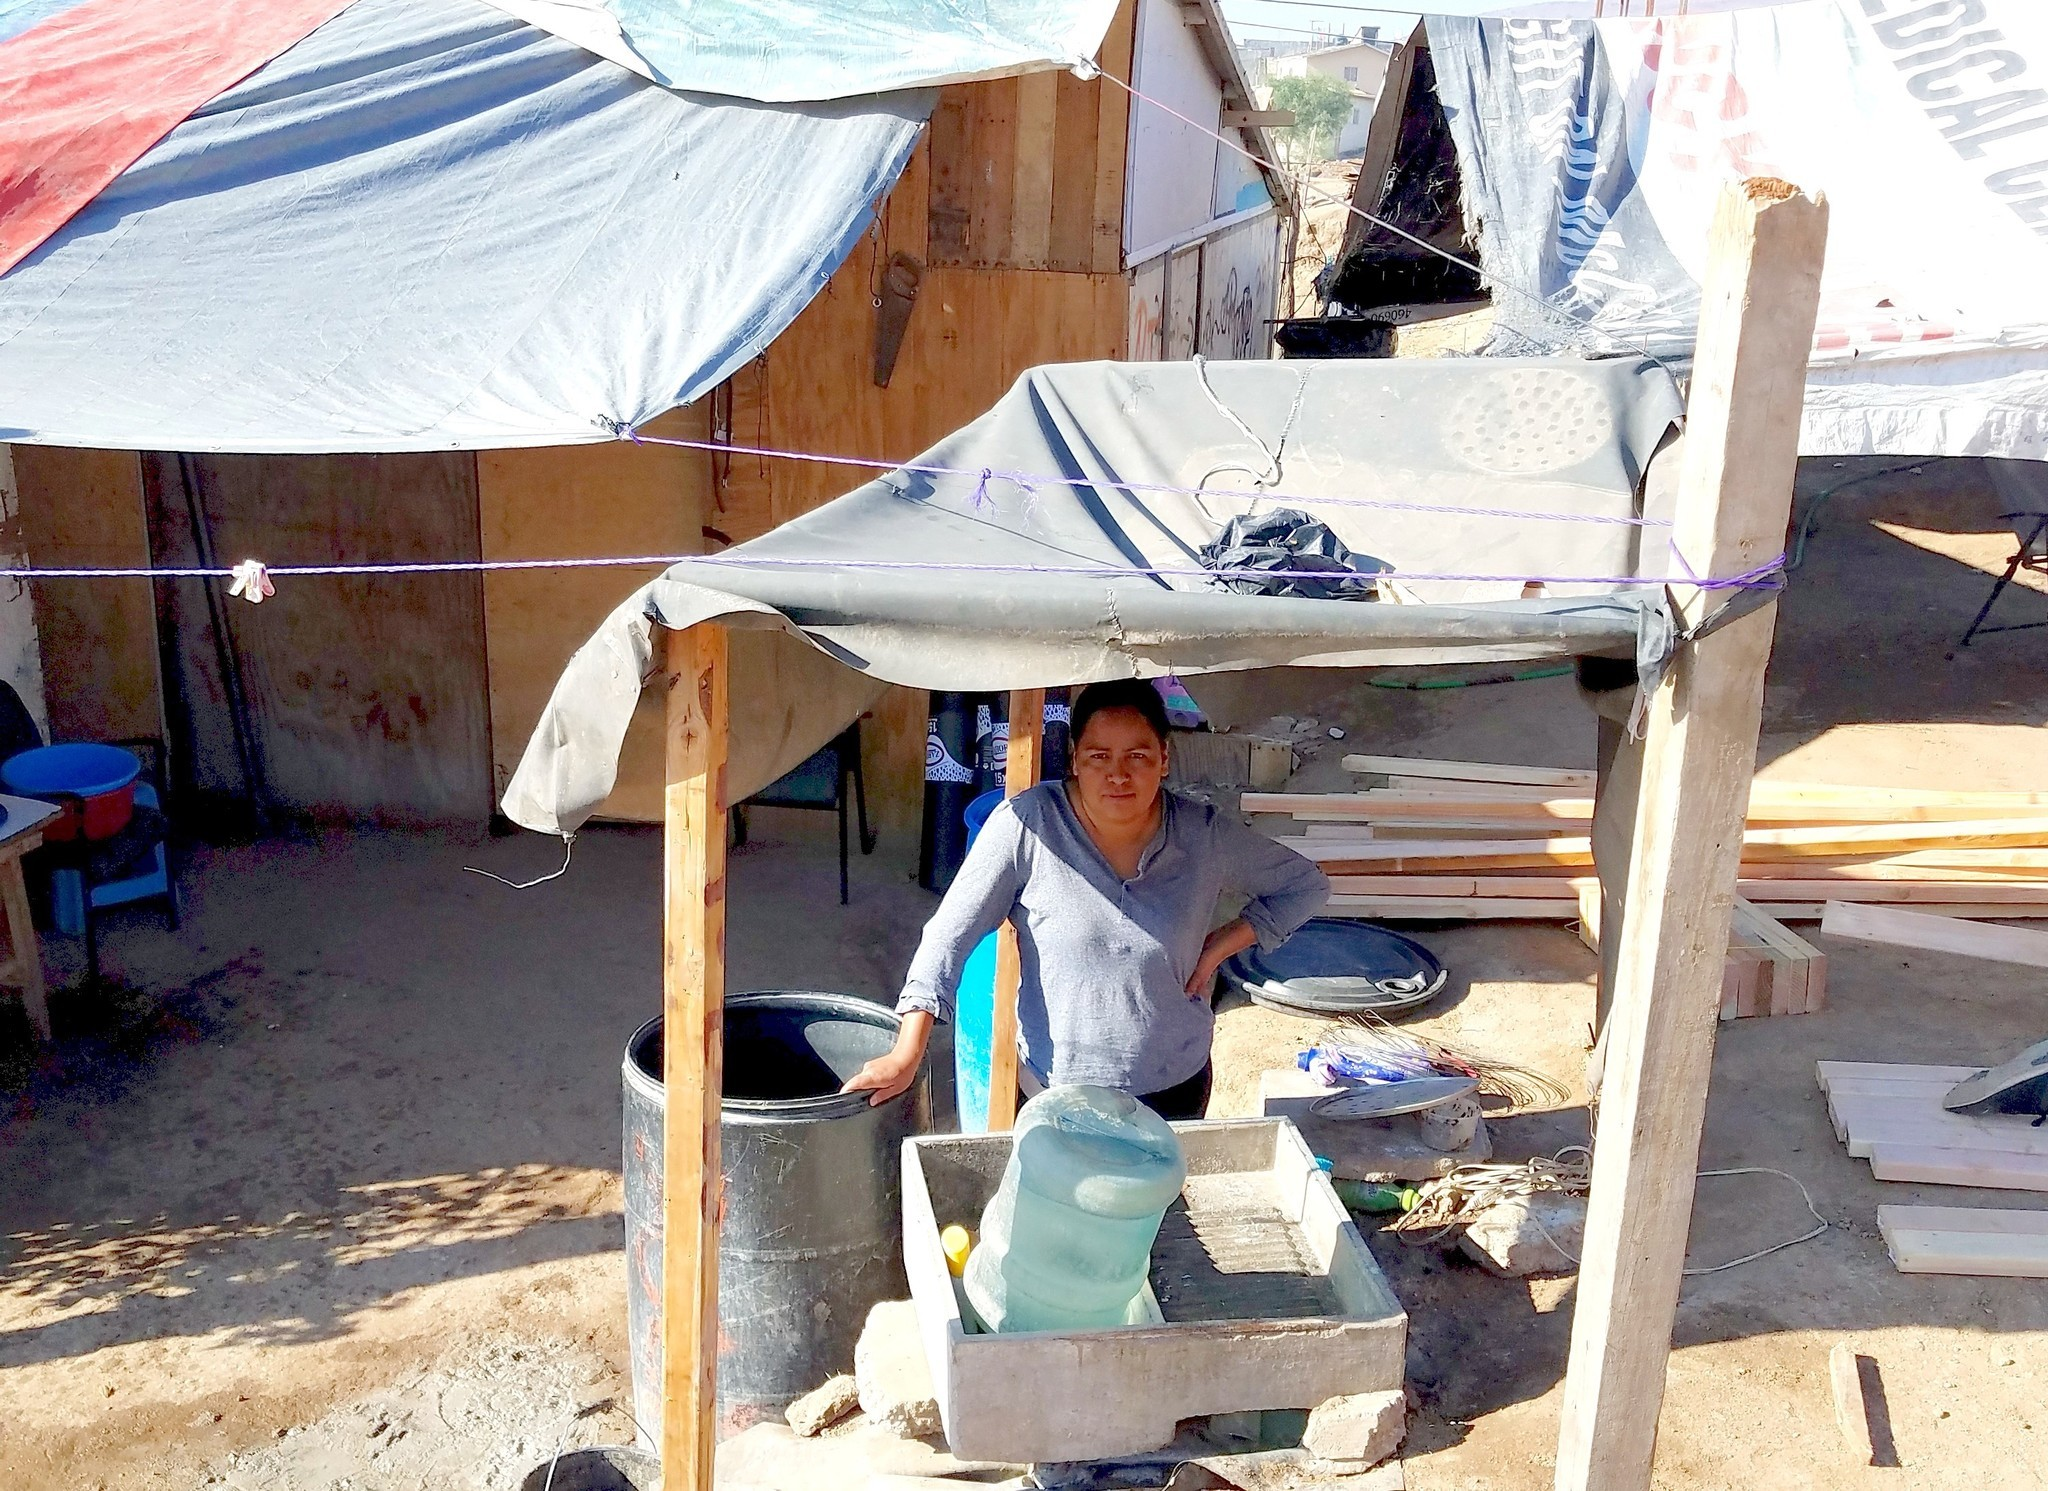 A photo taken by Schniepp shows how the families typically live prior to the Rotary Club home build. This woman poses in what functions as the home's kitchen.